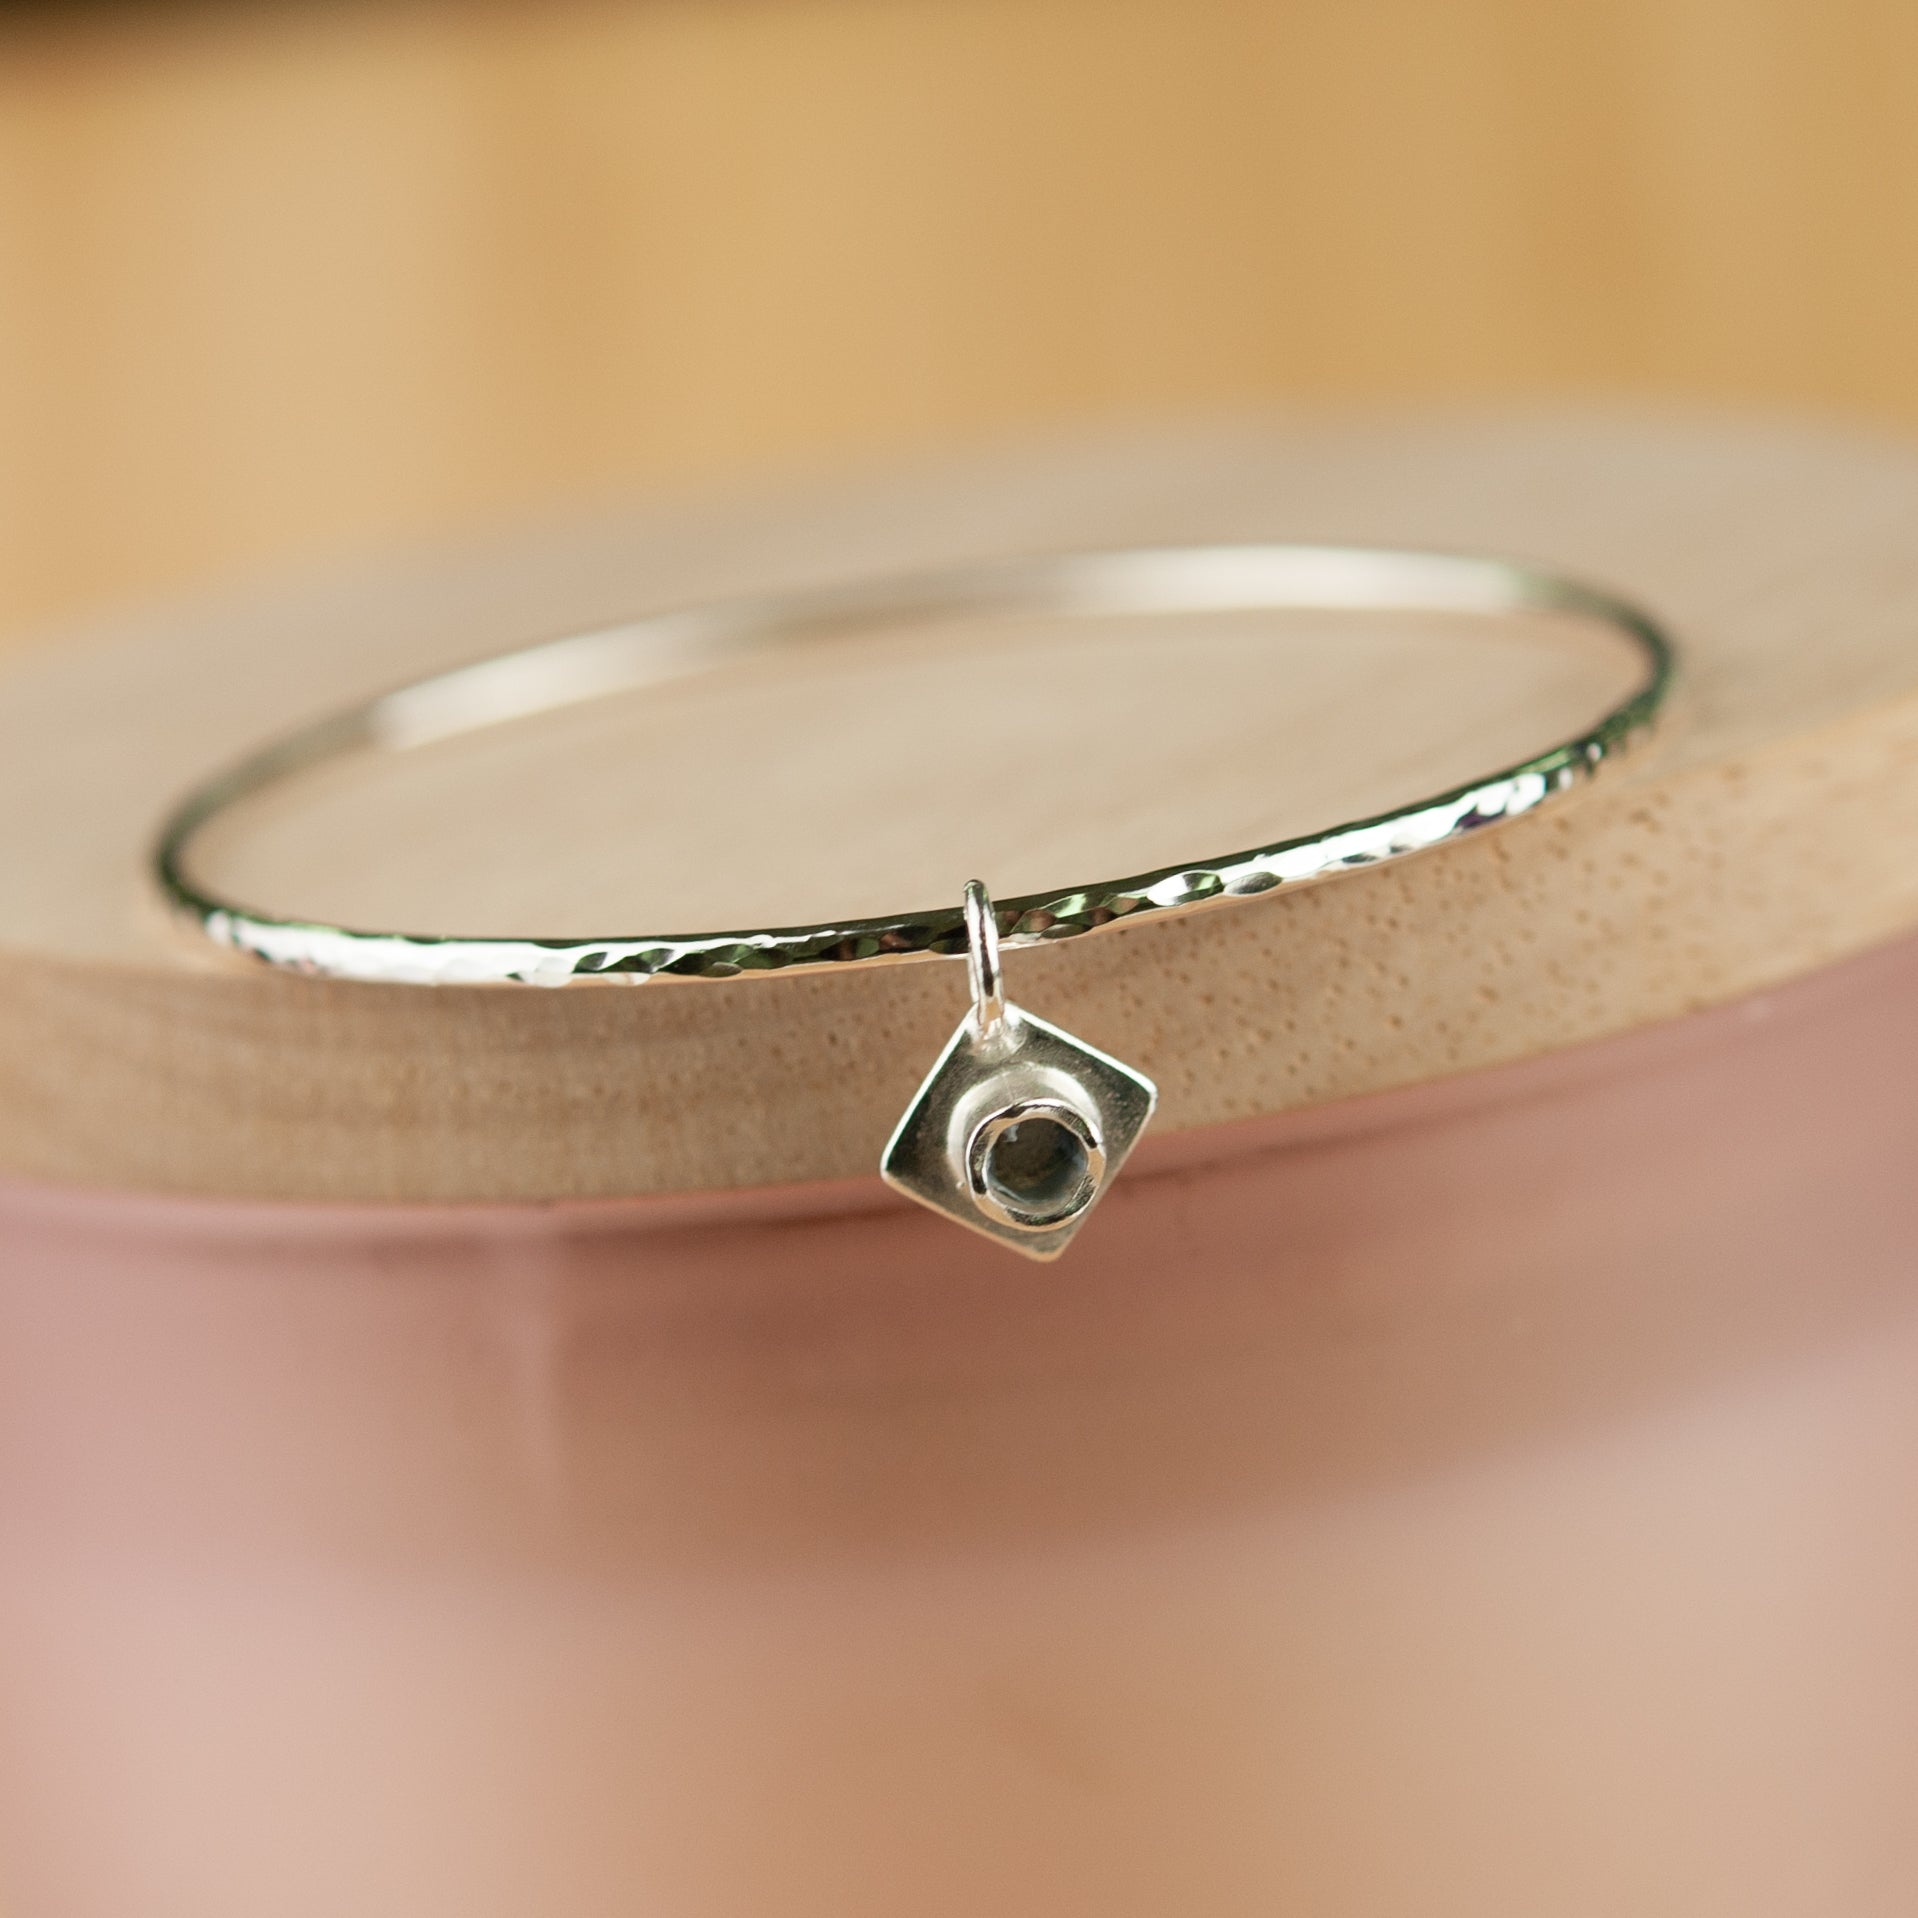 Belle & Bee graduation bangle